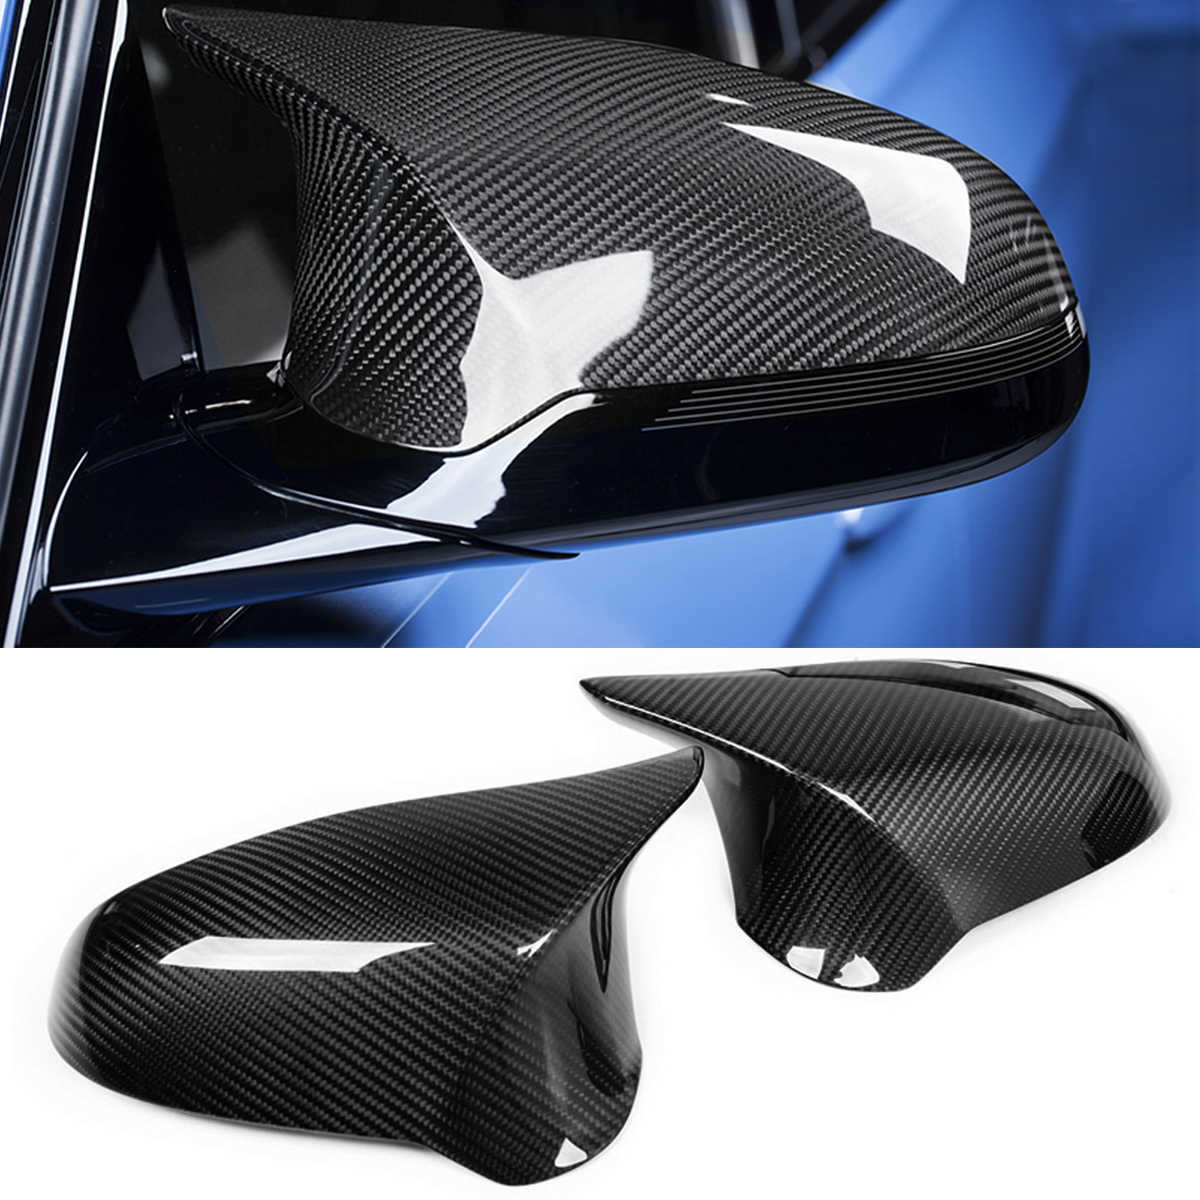 1Pair Add-On Carbon Fiber Car Side Wing Rearview Mirror Cover Caps  Direct Replacement For BMW F80 M3 F82 M4 2015 2016 2017 2018